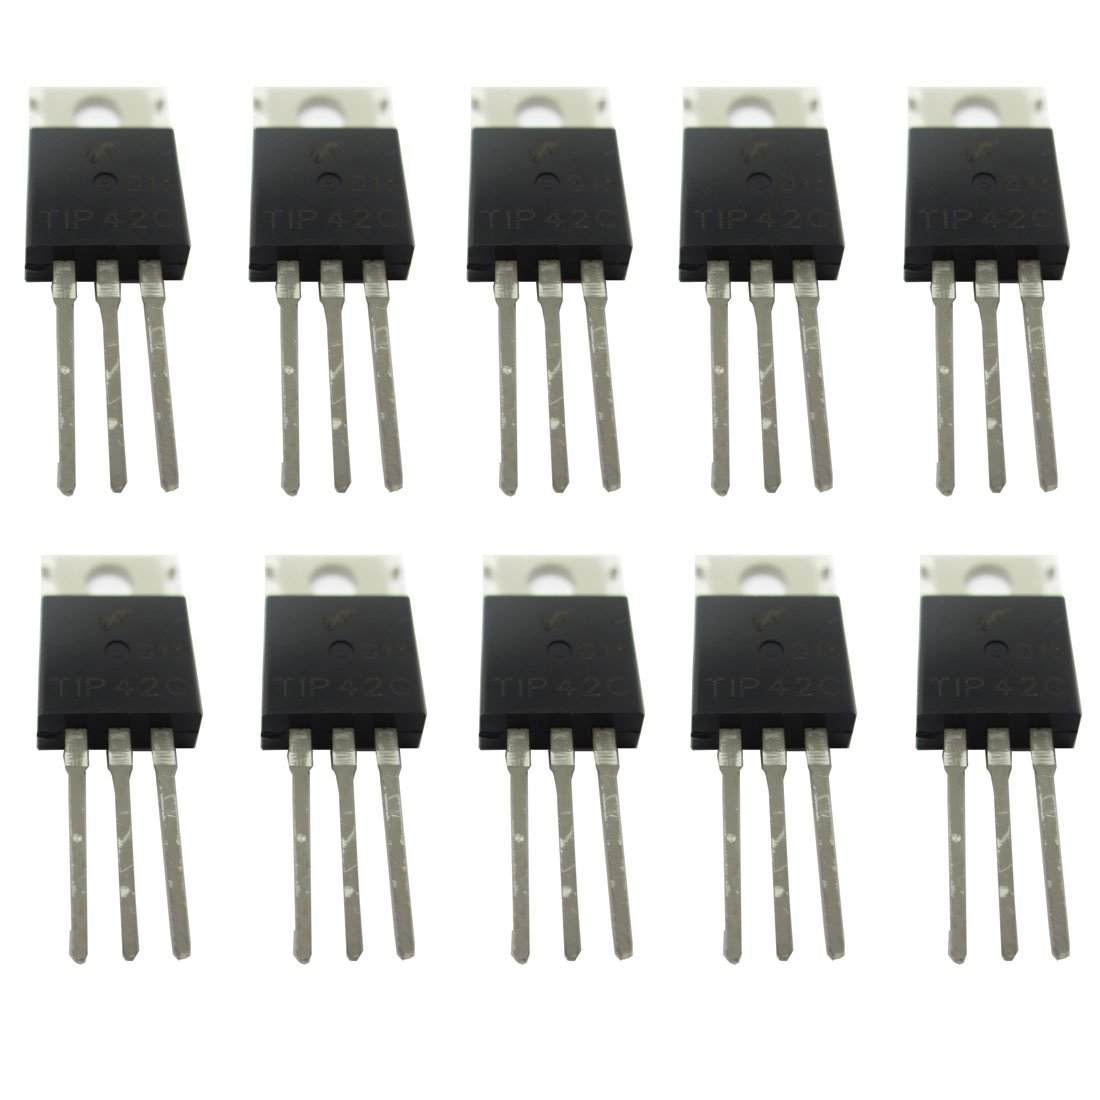 Frequency Divider By One Transistor Bc549 Simple Electronic Microphone Preamplifier With Bjt And Op Amp Youspice Tip42c Tip42 Pnp Complementary Power To 220 10 Pack Product Image